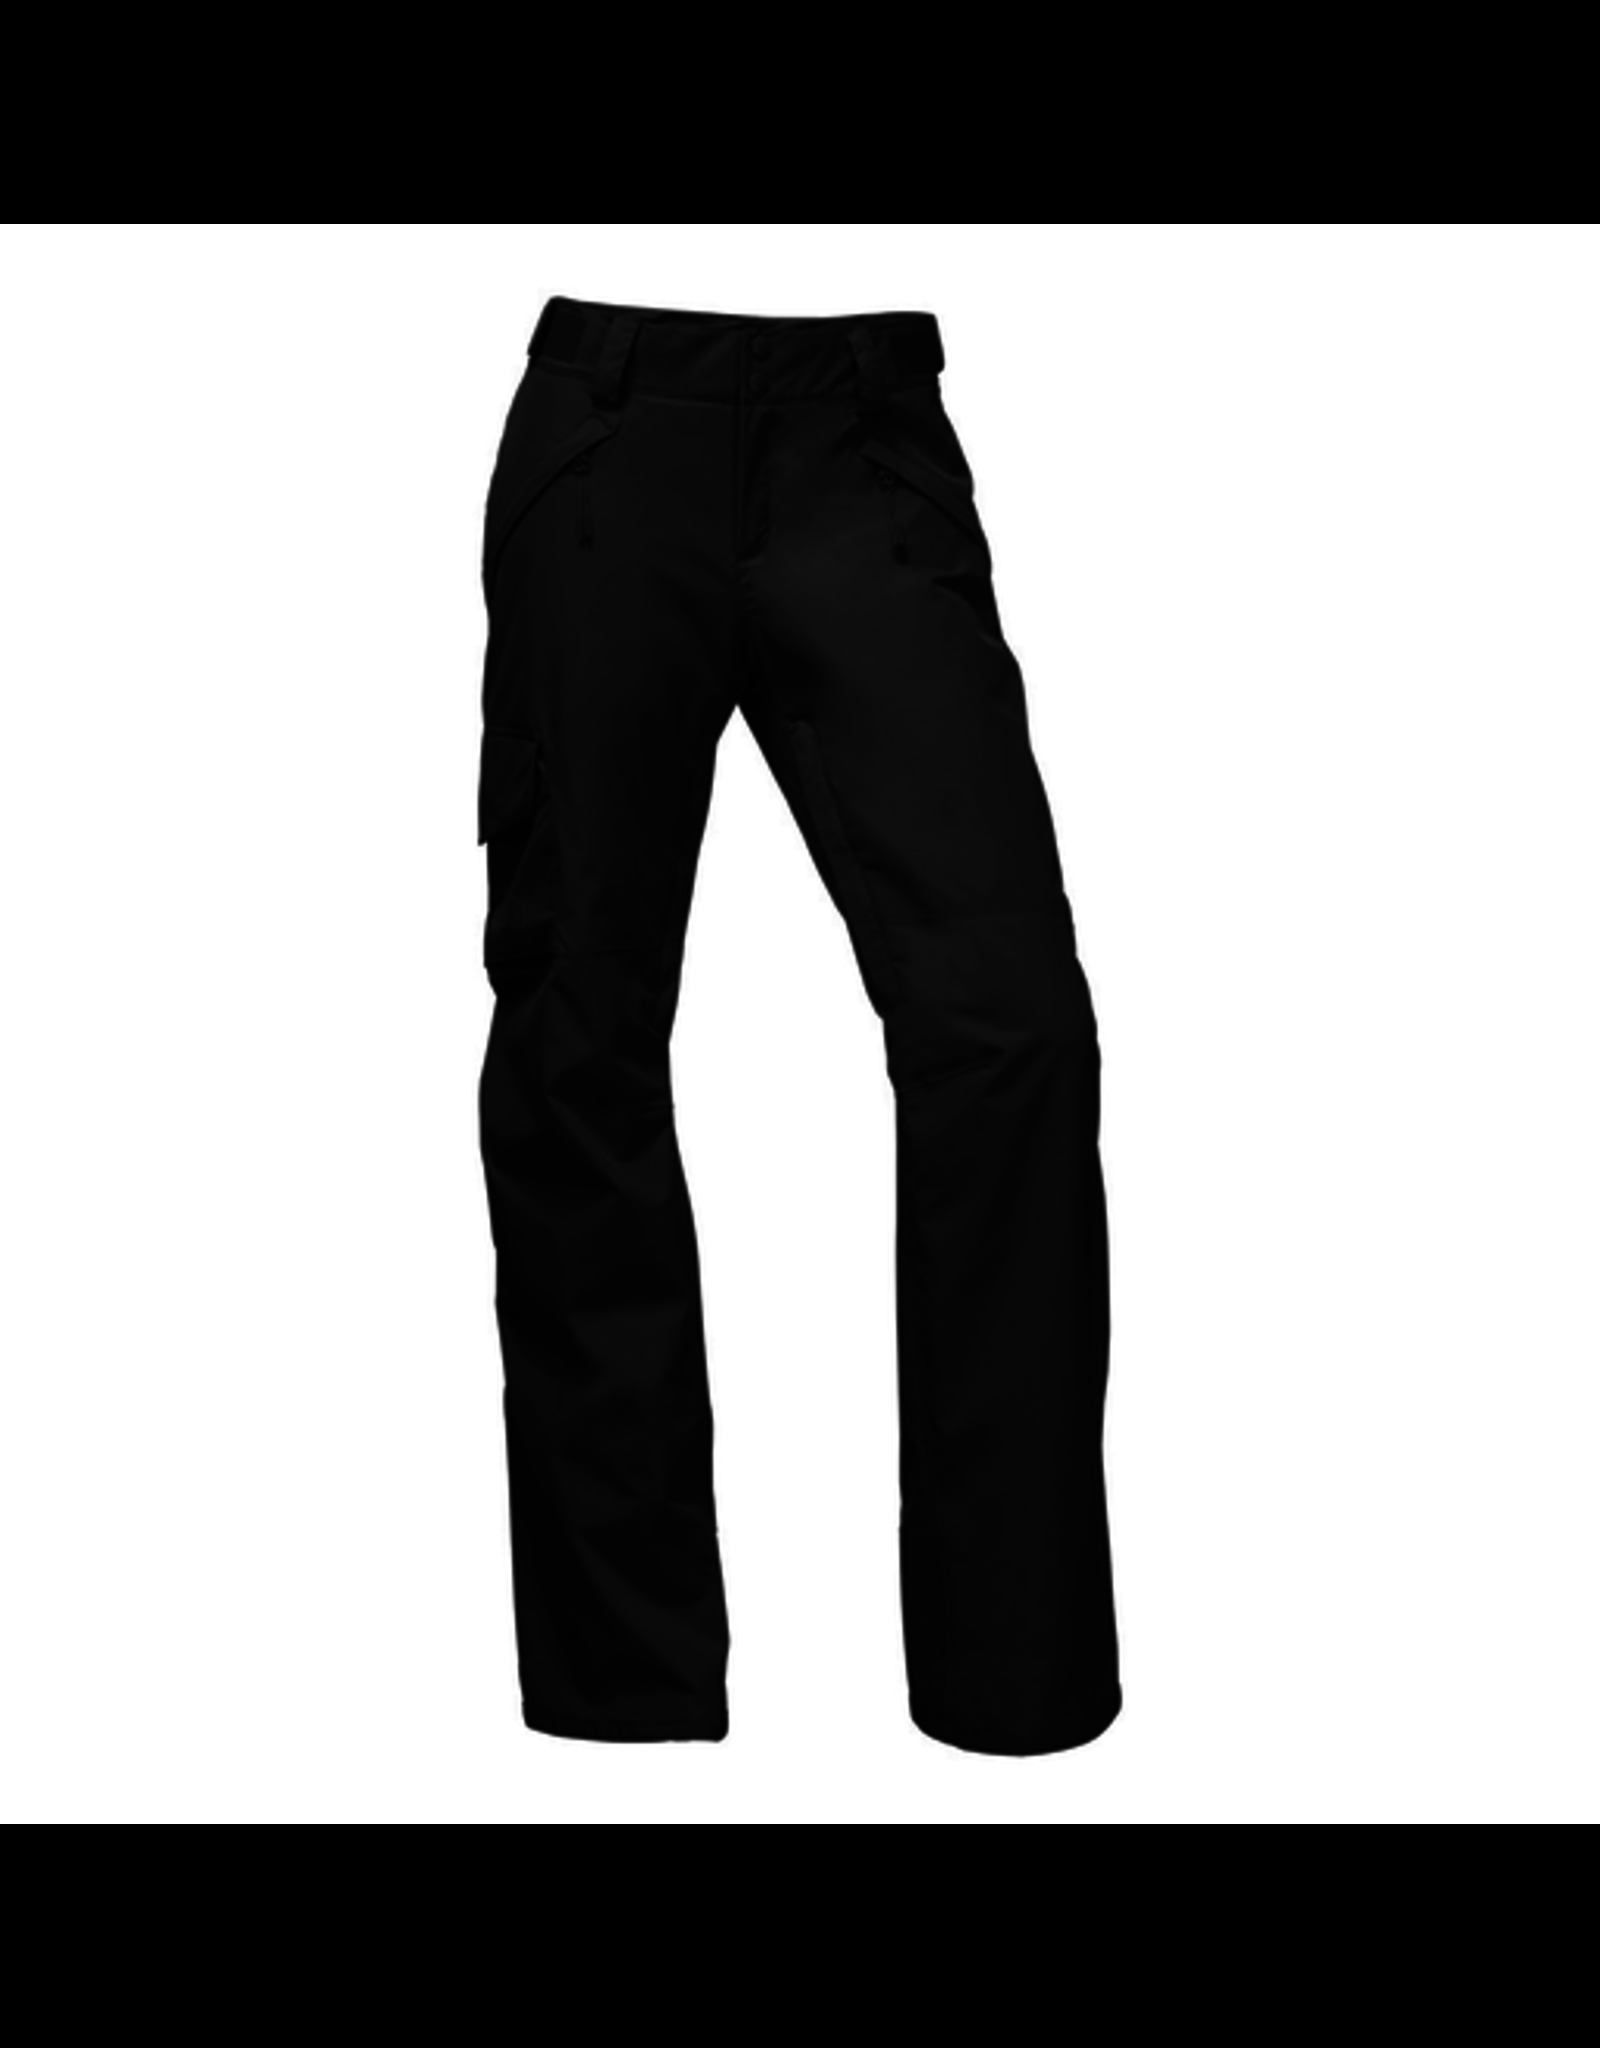 North Face North Face Women's Freedom Insulated Pants